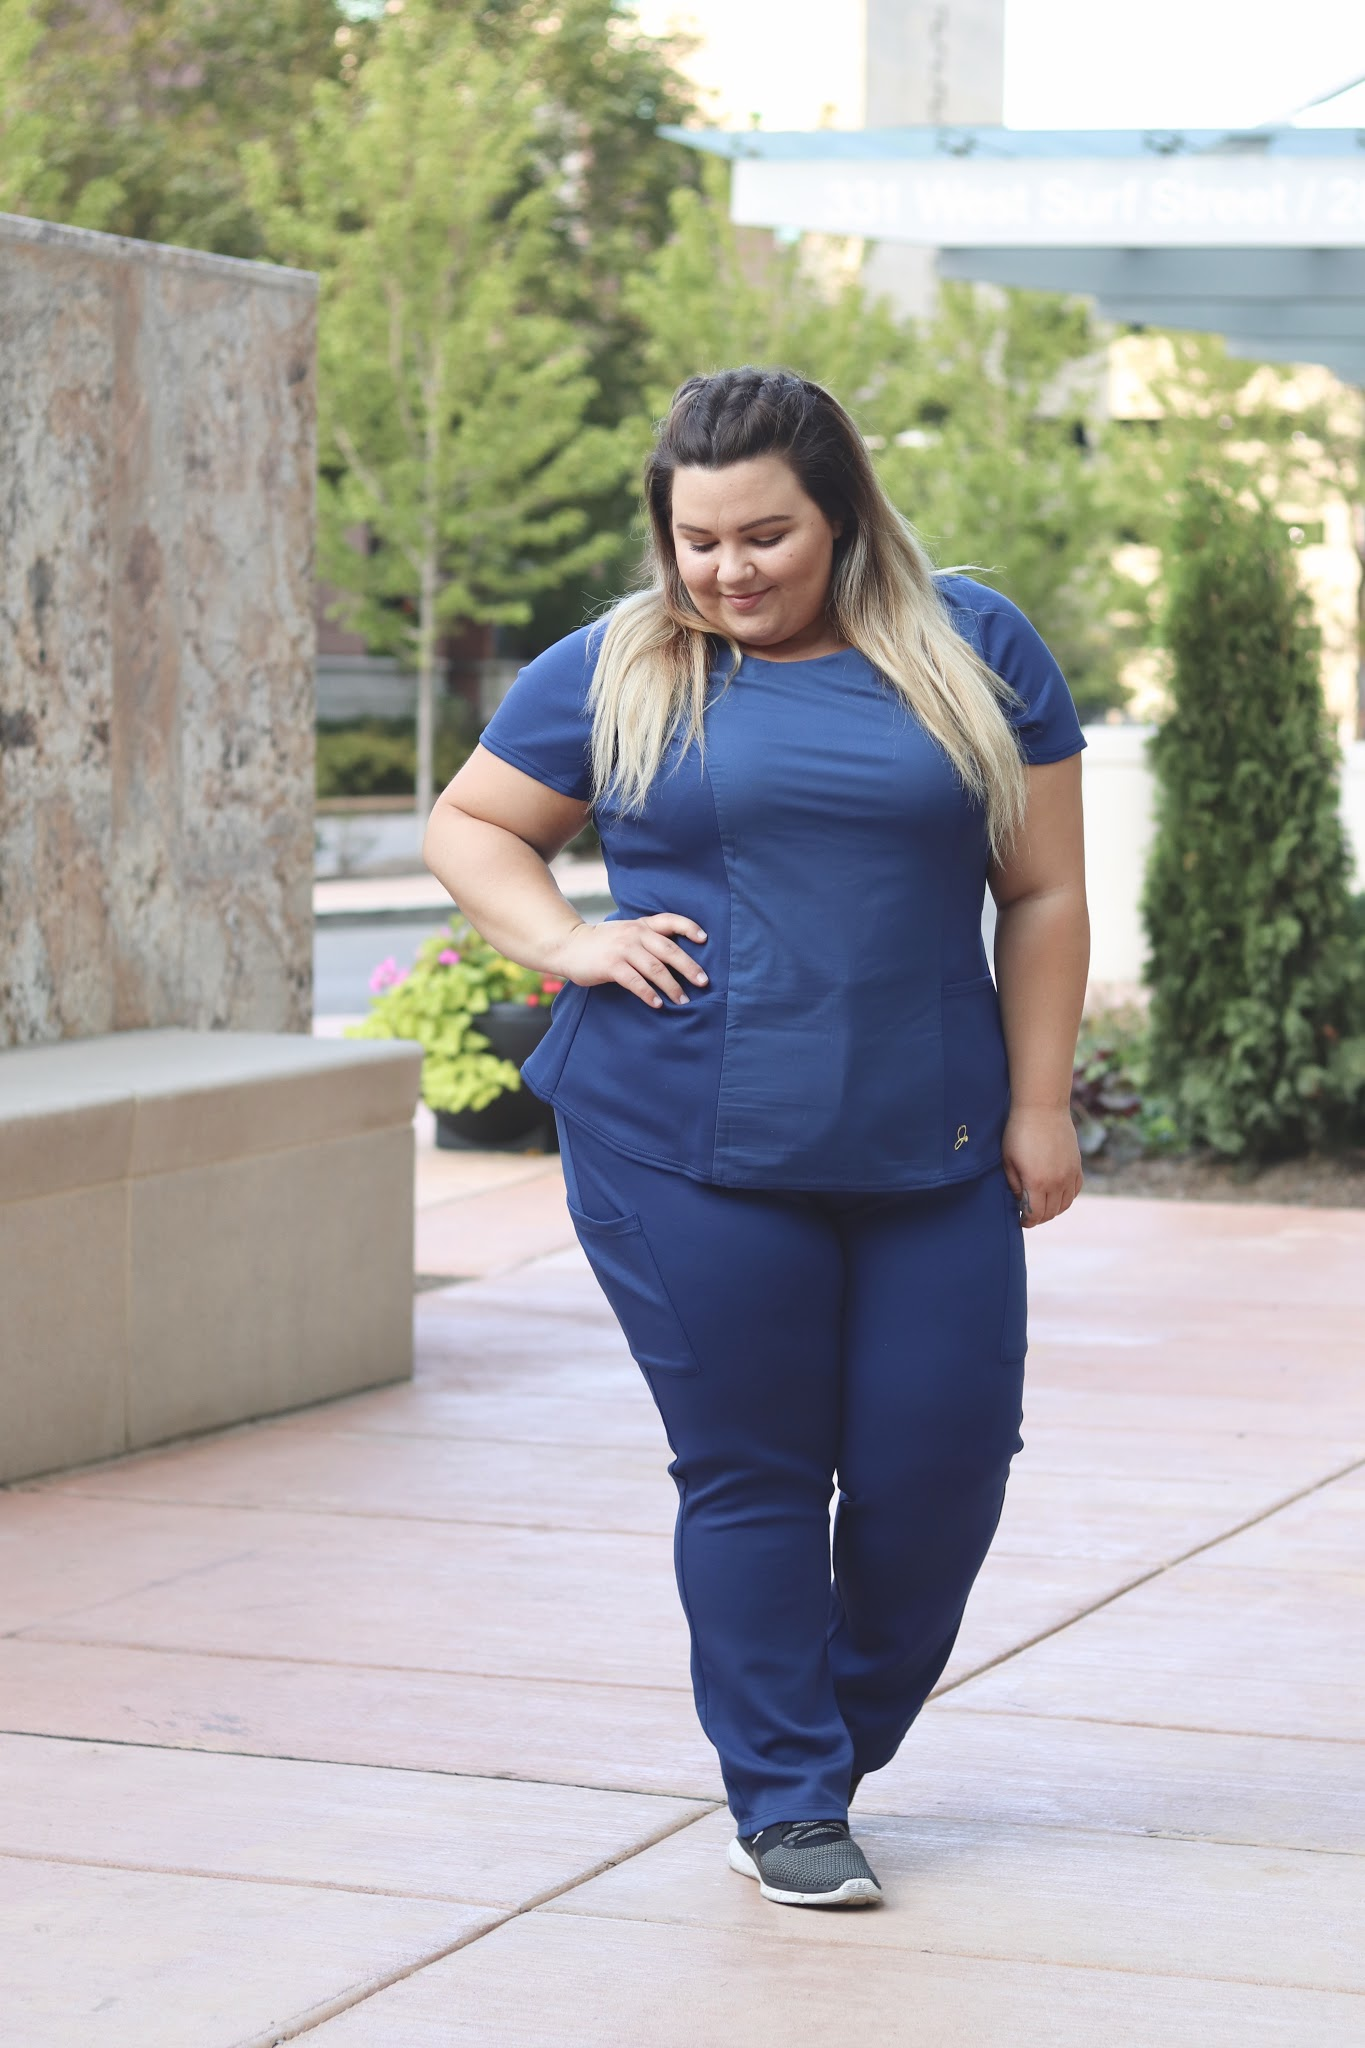 plus size scrubs, plus size medical apparel, affordable plus size clothing, natalie in the city, natalie craig, plus size fashion, Chicago plus size fashion blogger